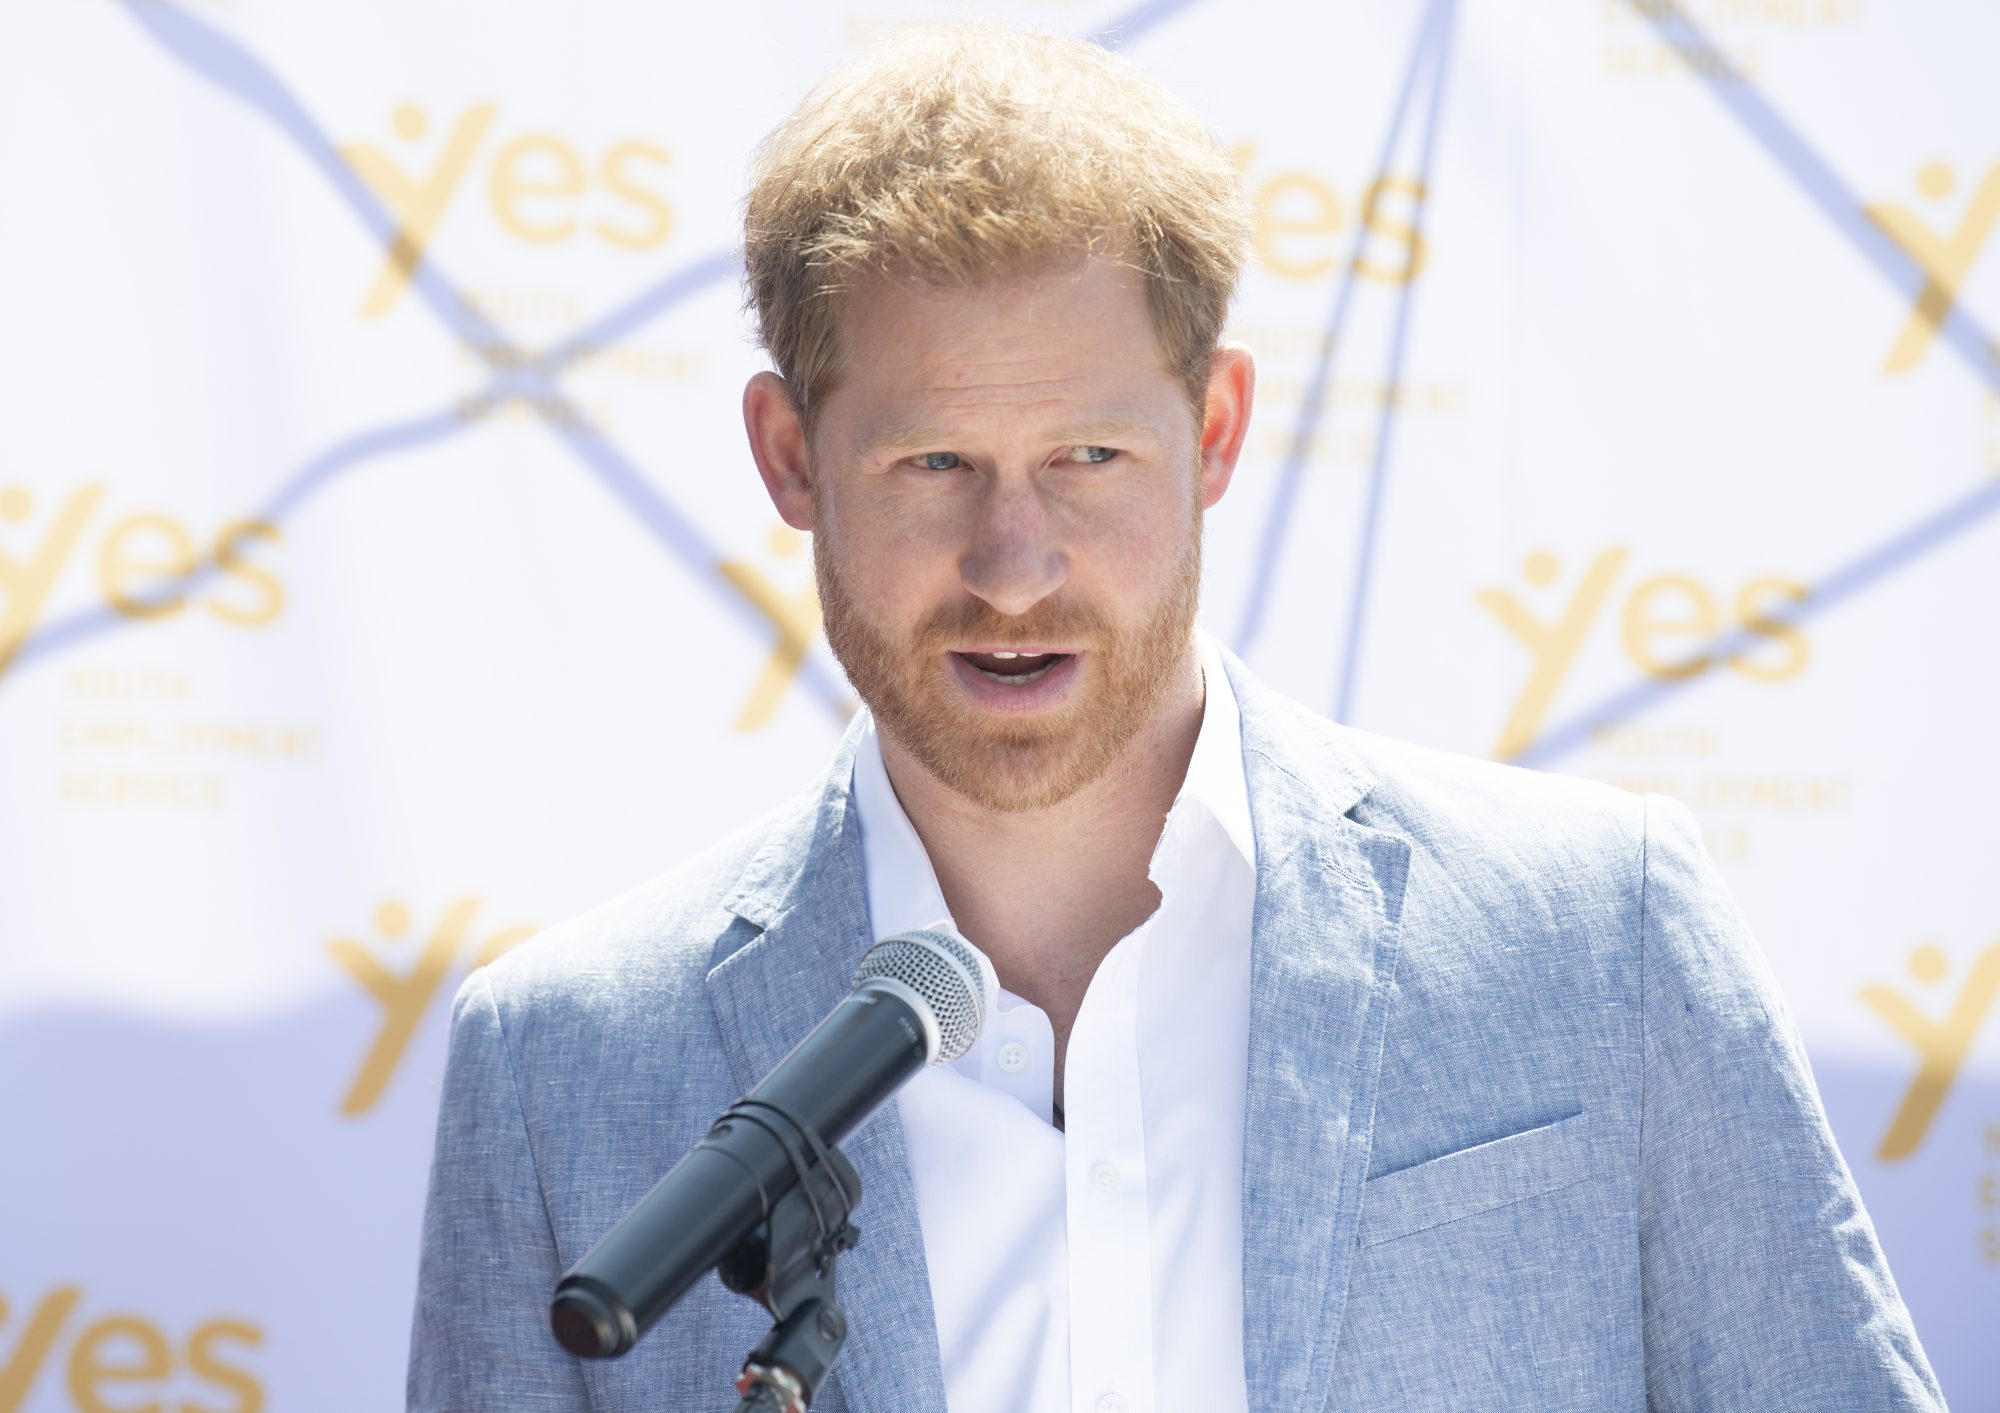 prince harry duke of sussex speech